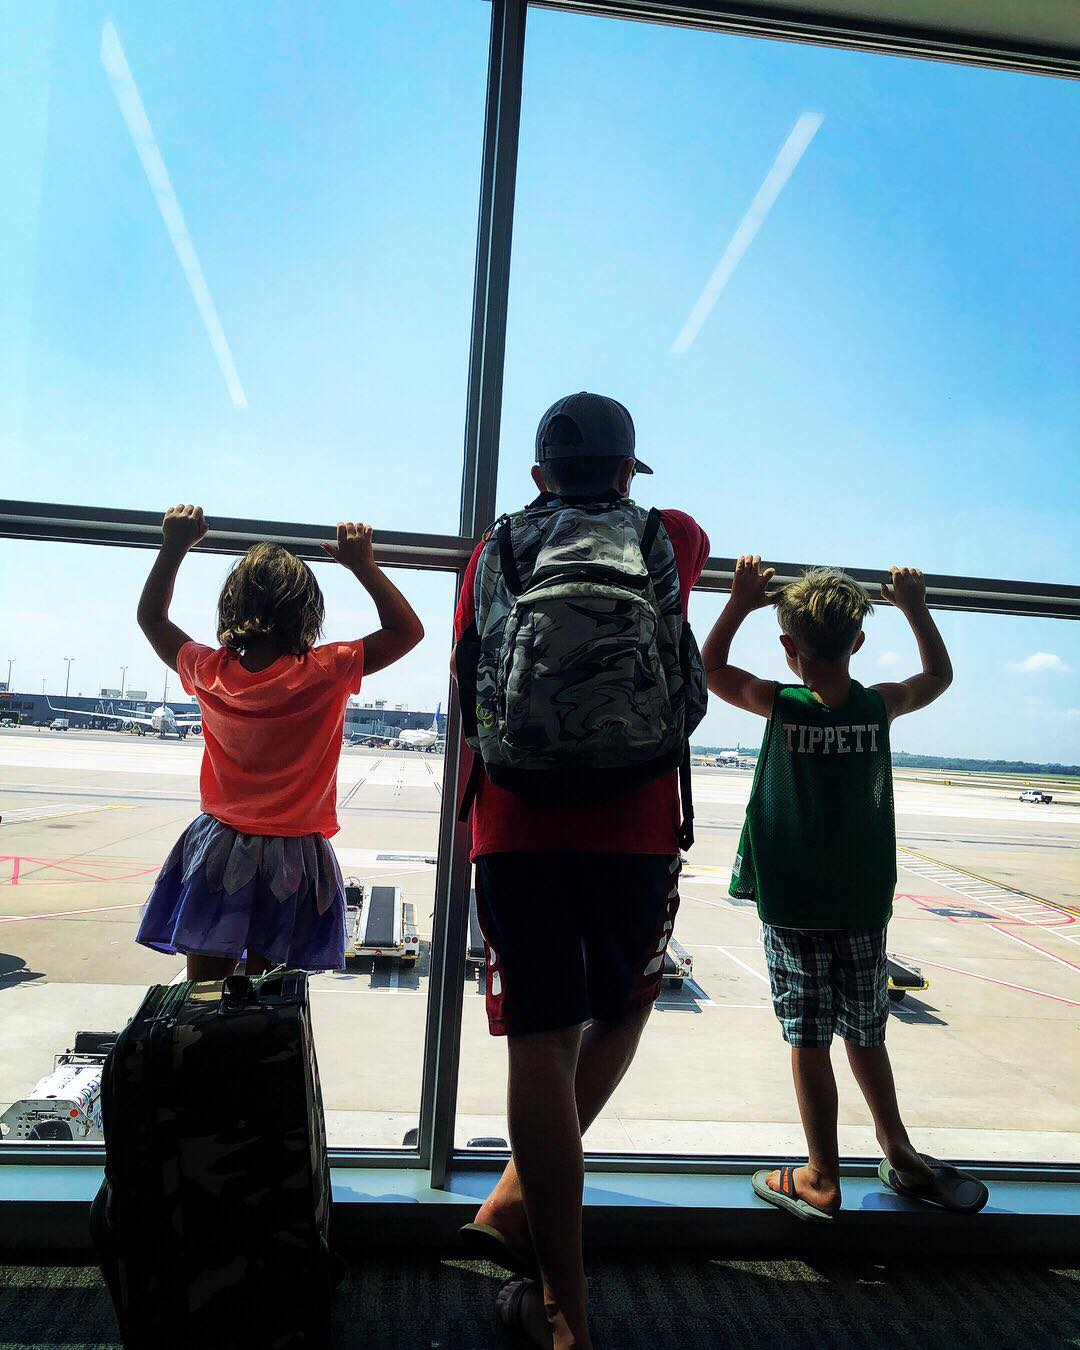 Hudson and two of his siblings watching the plane come in before he boarding his flight. His siblings get to some sit with him unti he boards!